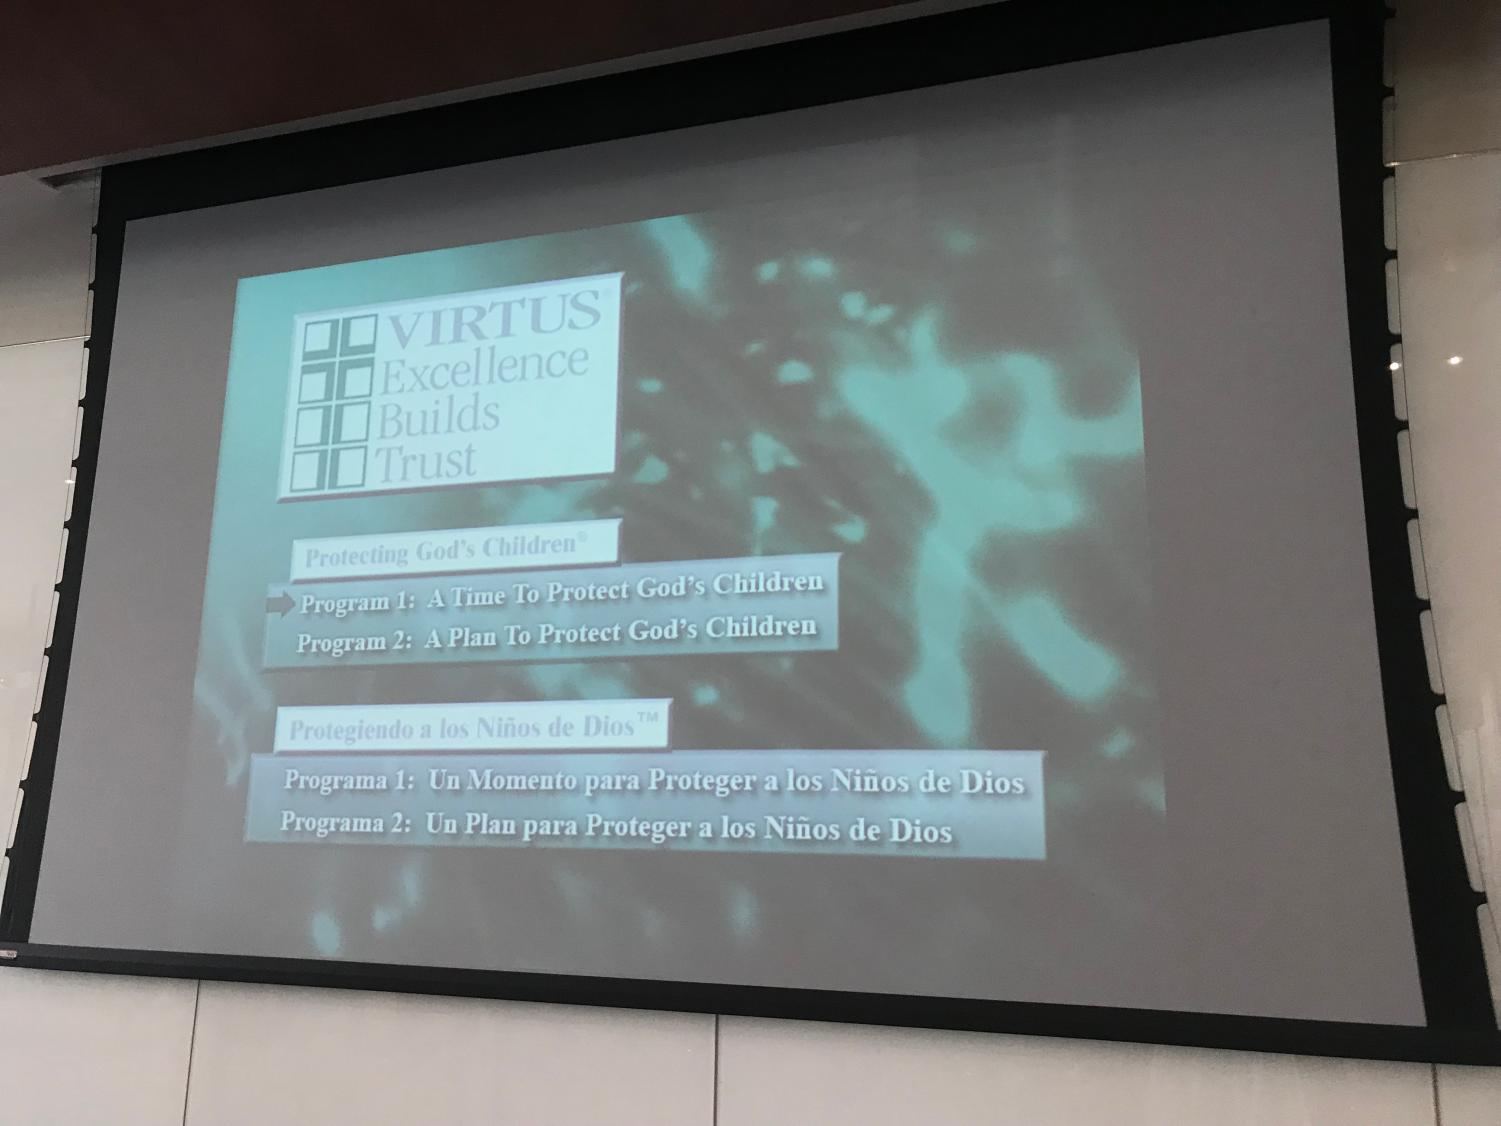 Screens showed the two awareness videos for